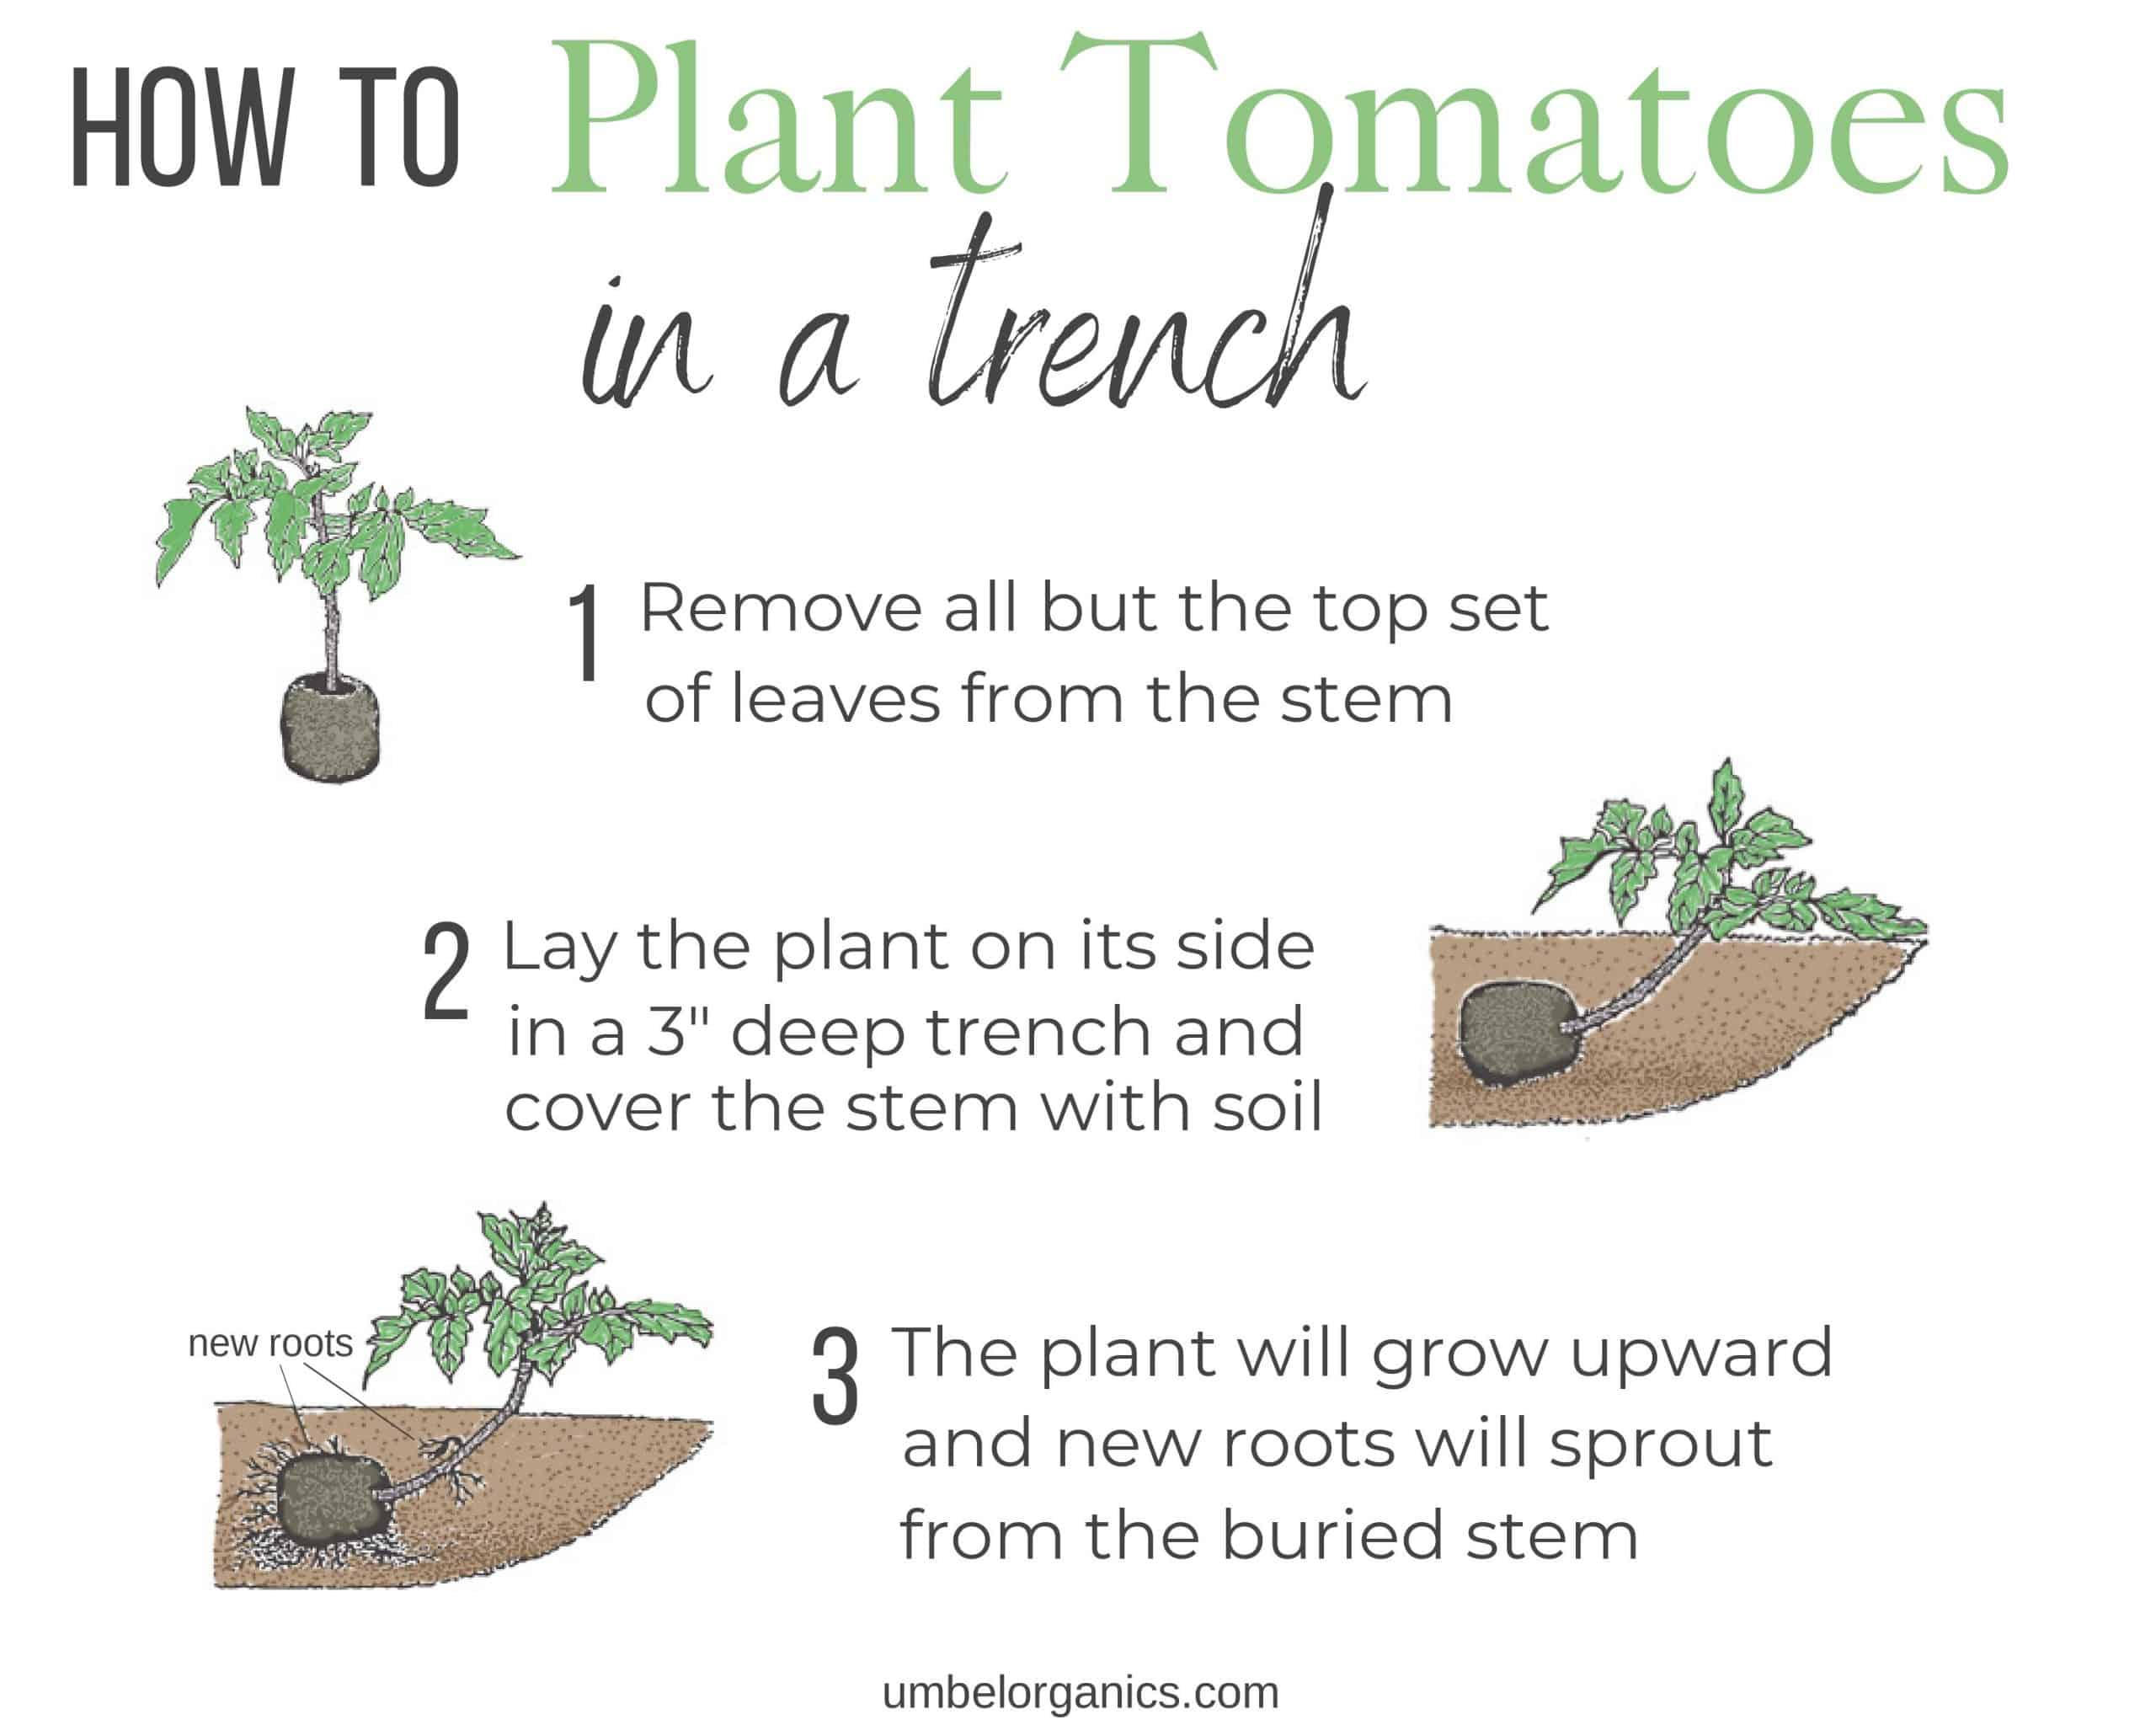 How to plant tomatoes in a trench